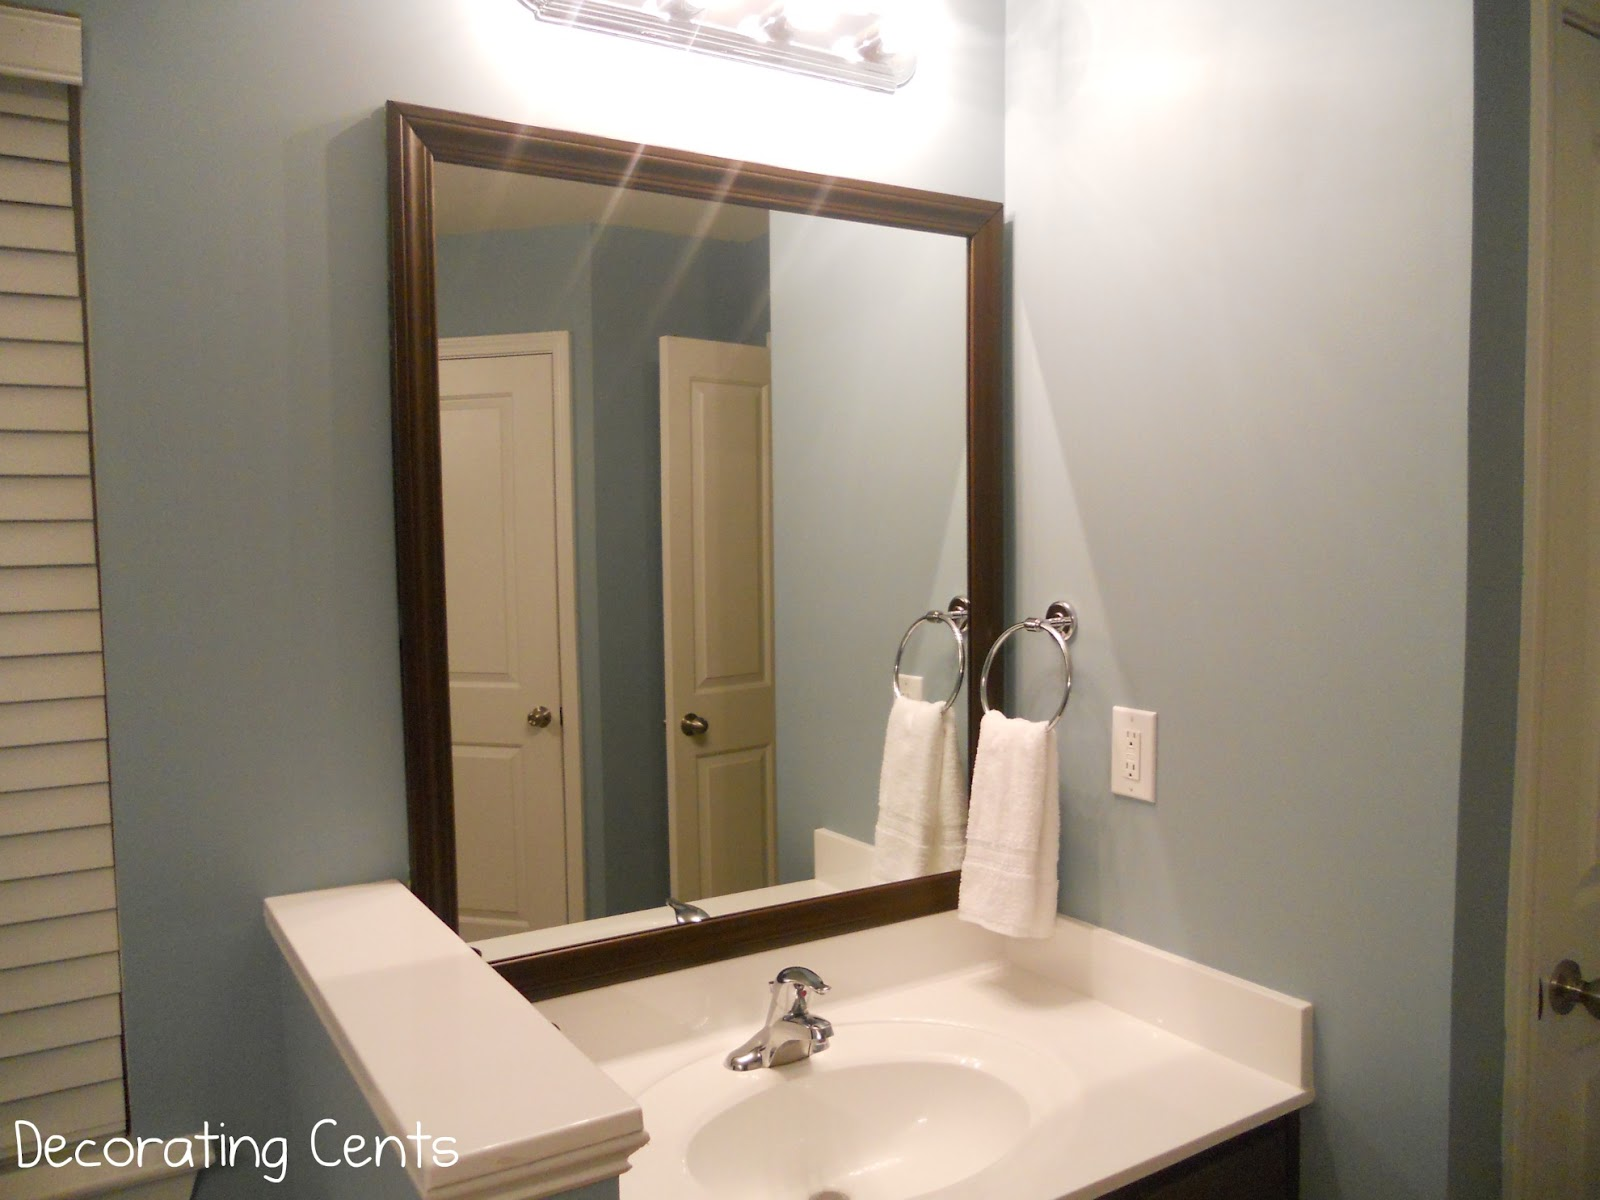 Mirror In The Bathroom Custom Decorating Cents Framing The Bathroom Mirrors Inspiration Design